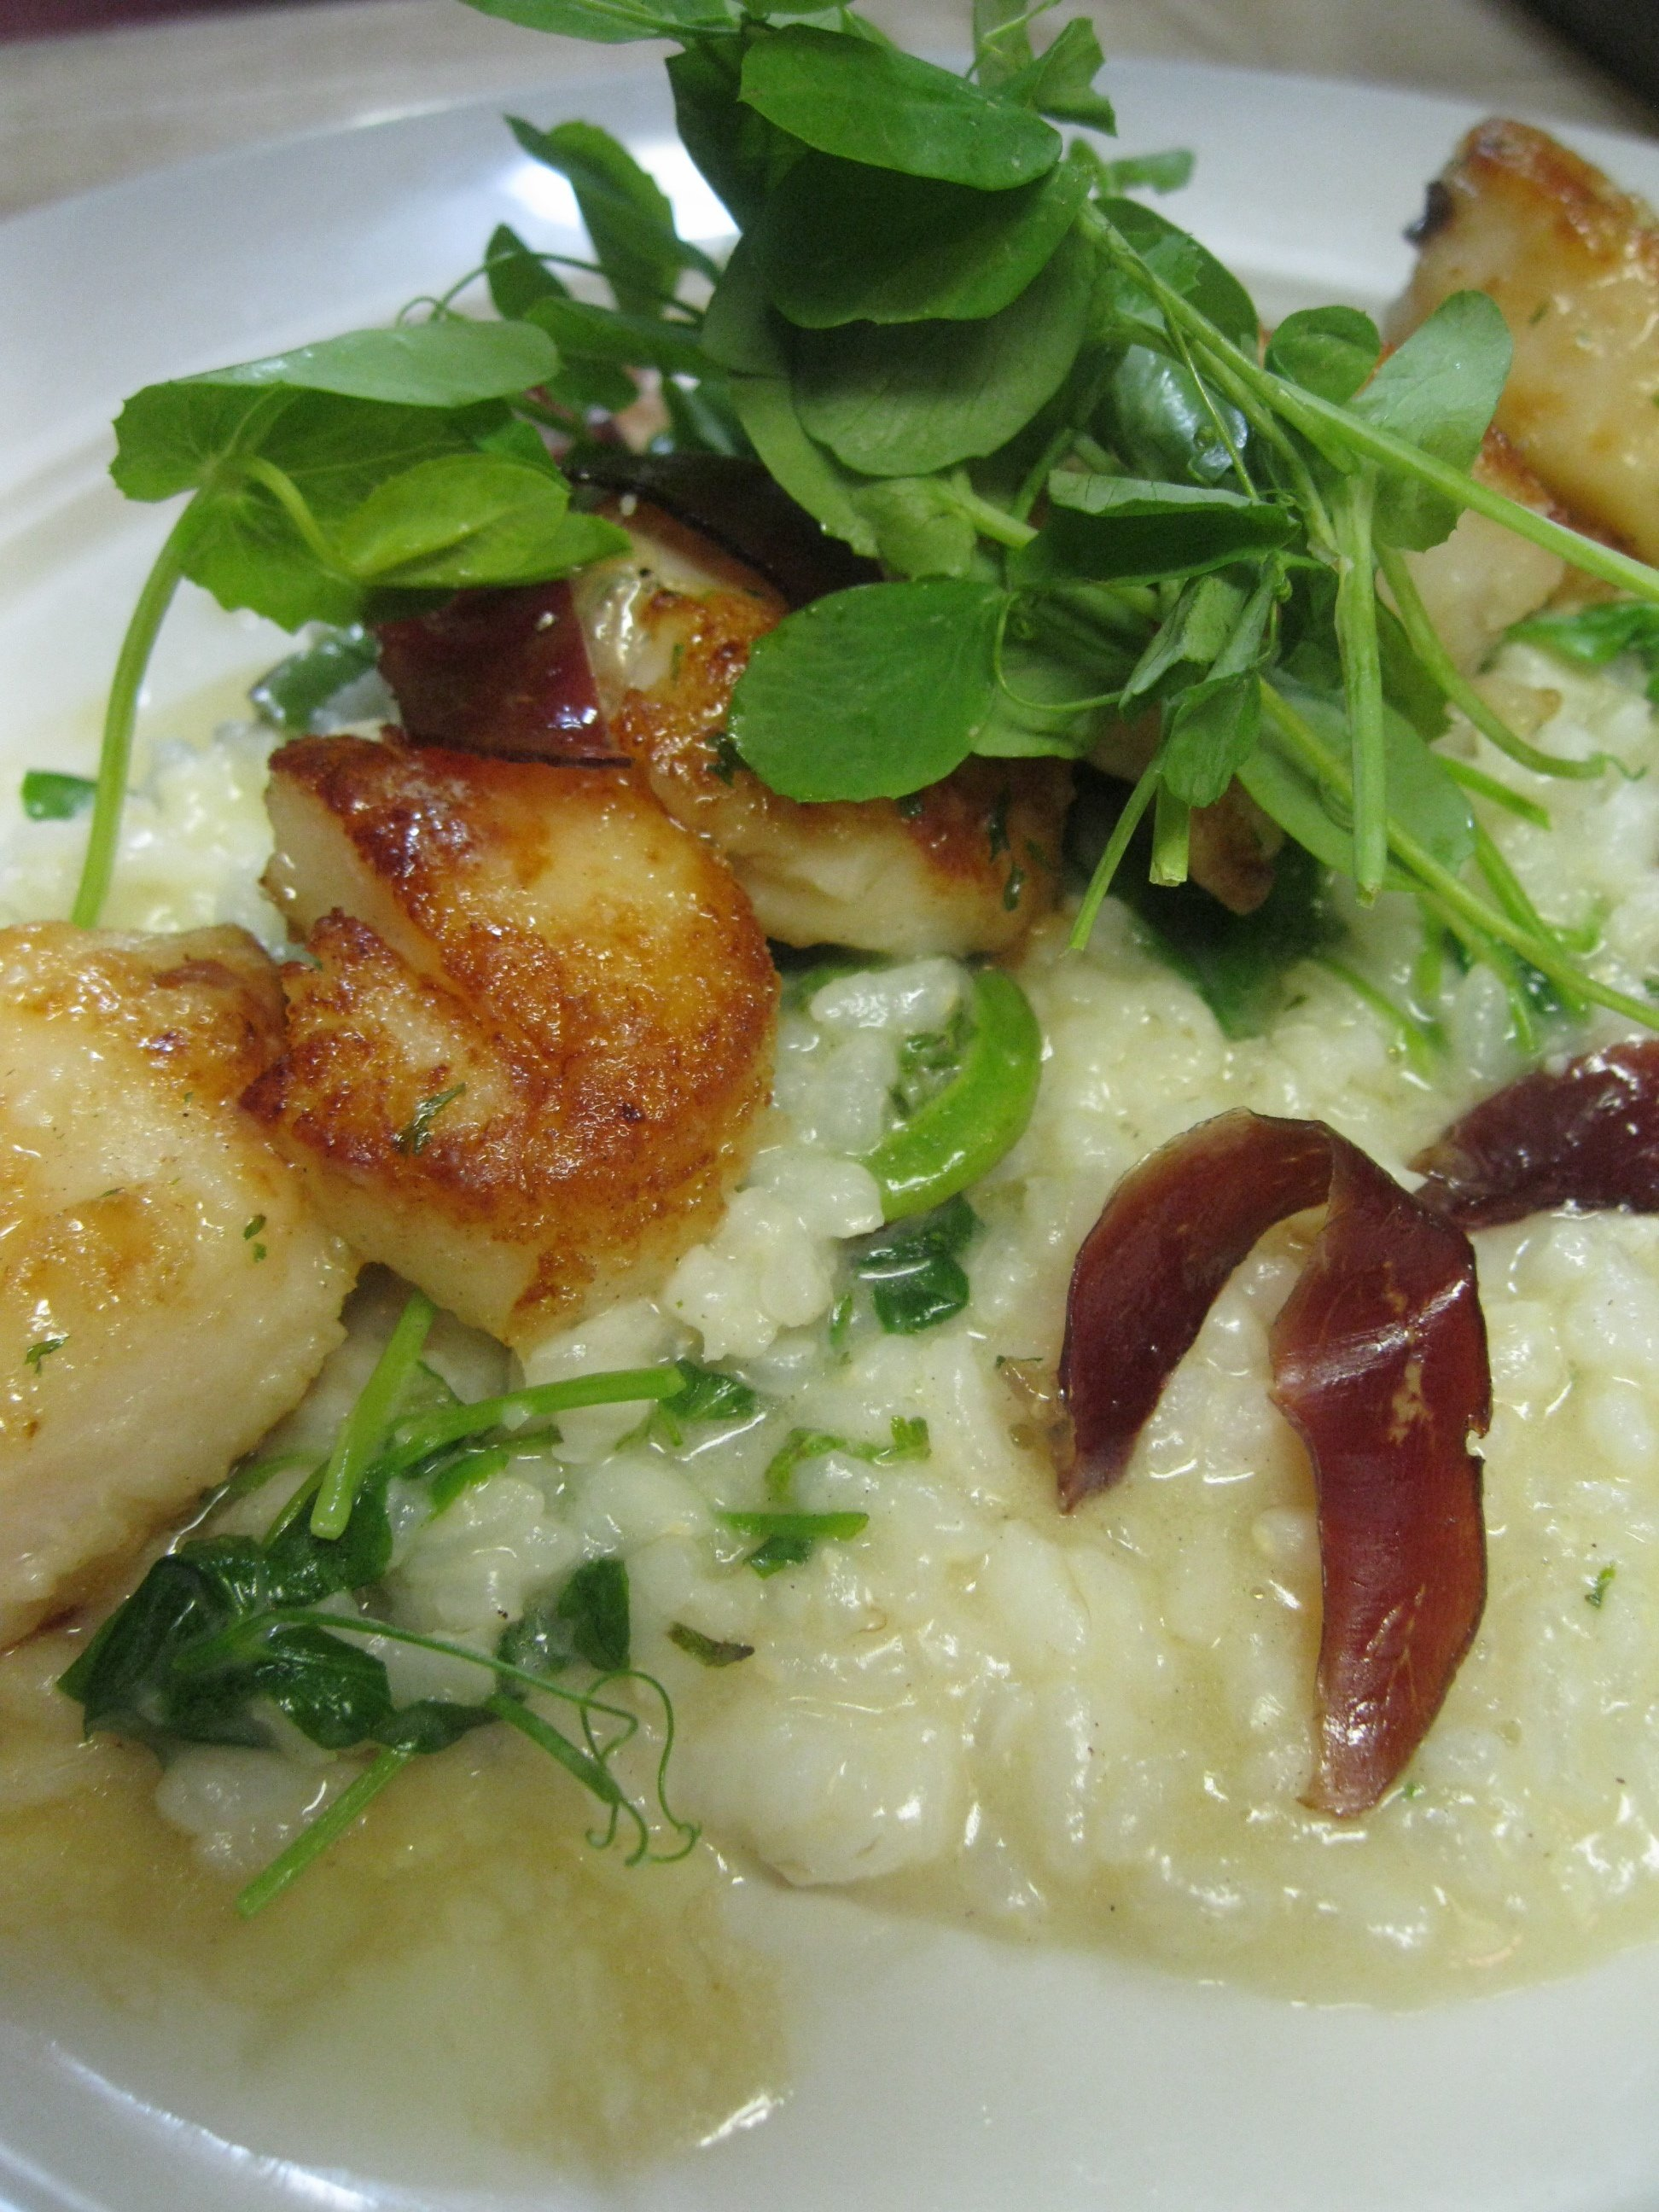 Seared  dayboat scallops with a fiddlehead risotto and duck prosciutto